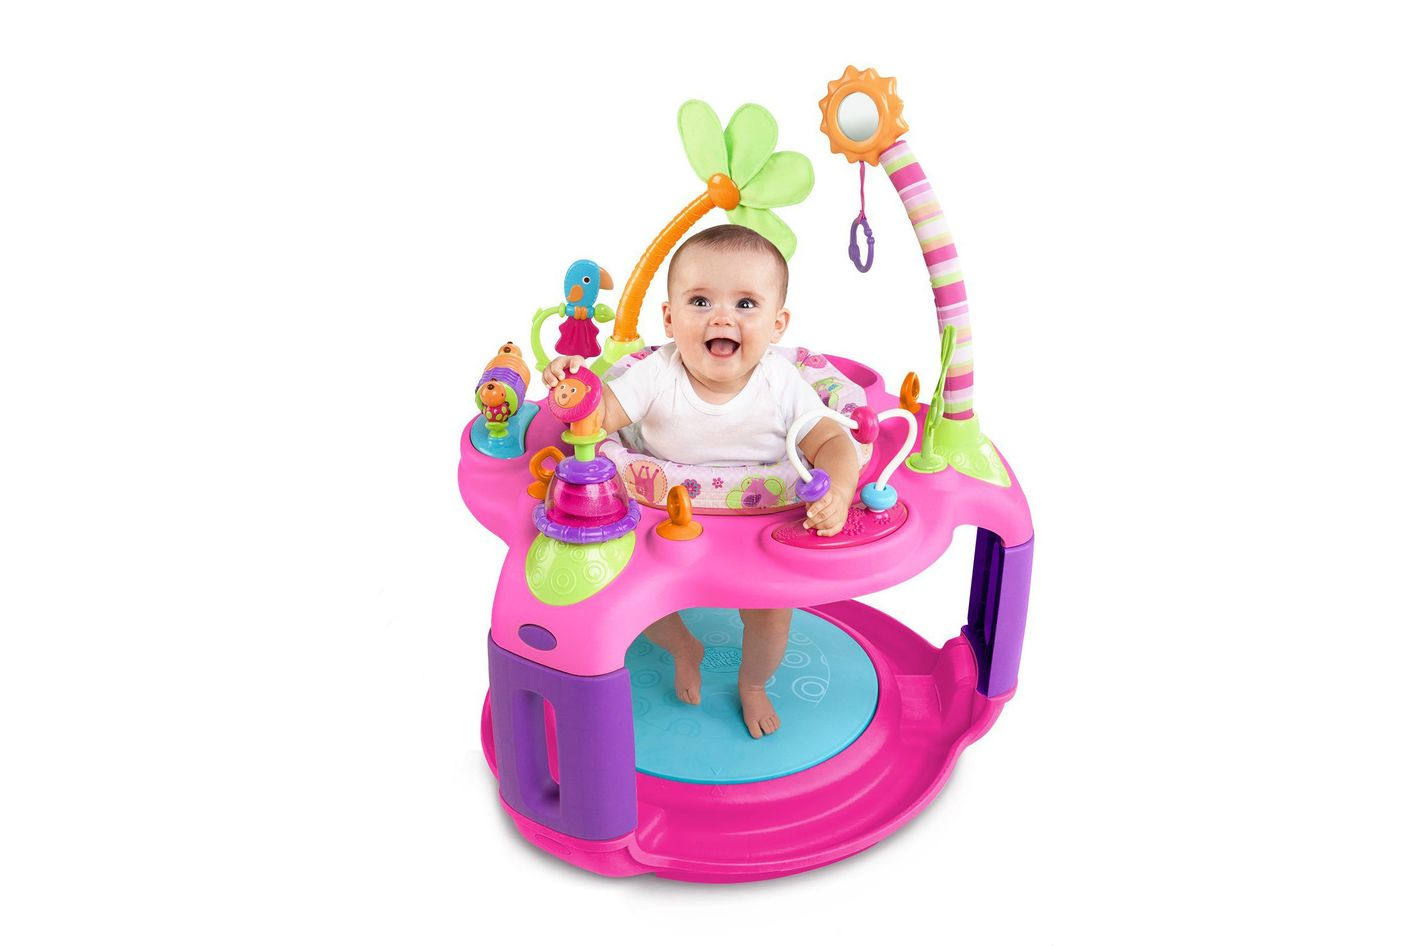 d852cd2e8 The Best Baby Bouncers and Jumpers Reviews 2017